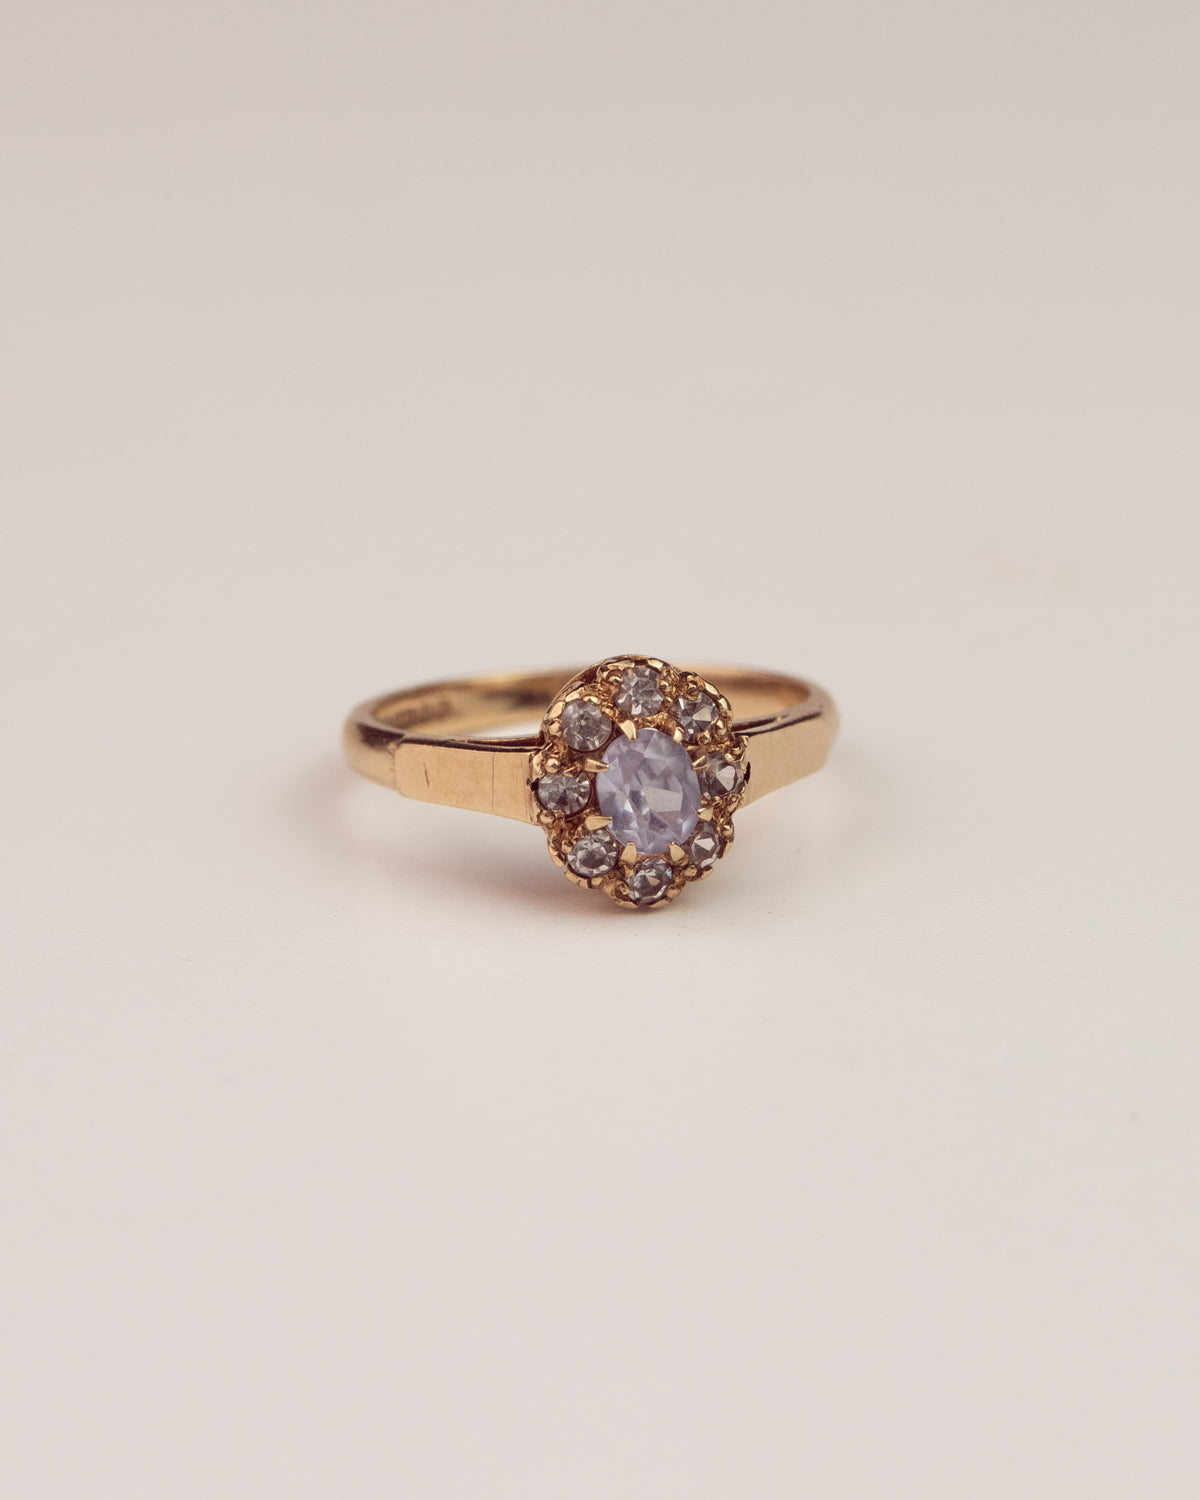 Image of Rita Exclusive Vintage 9ct Gold Sapphire and Spinel Ring